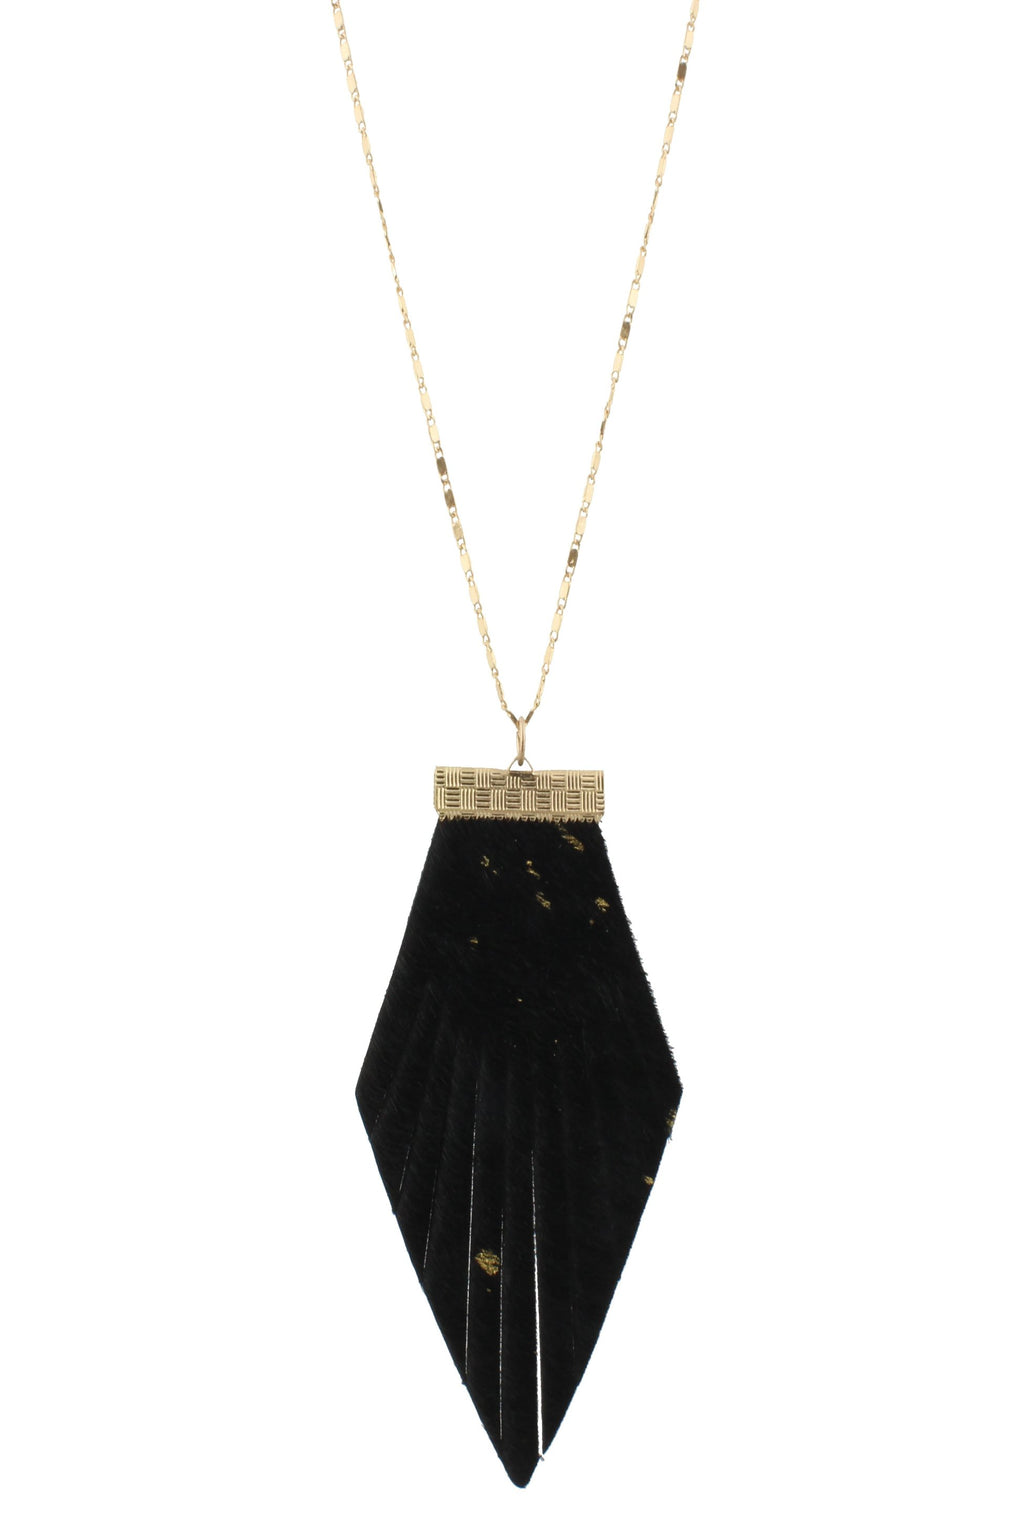 JM Black Cowhide Pendant Necklace - Free Souls Boutique